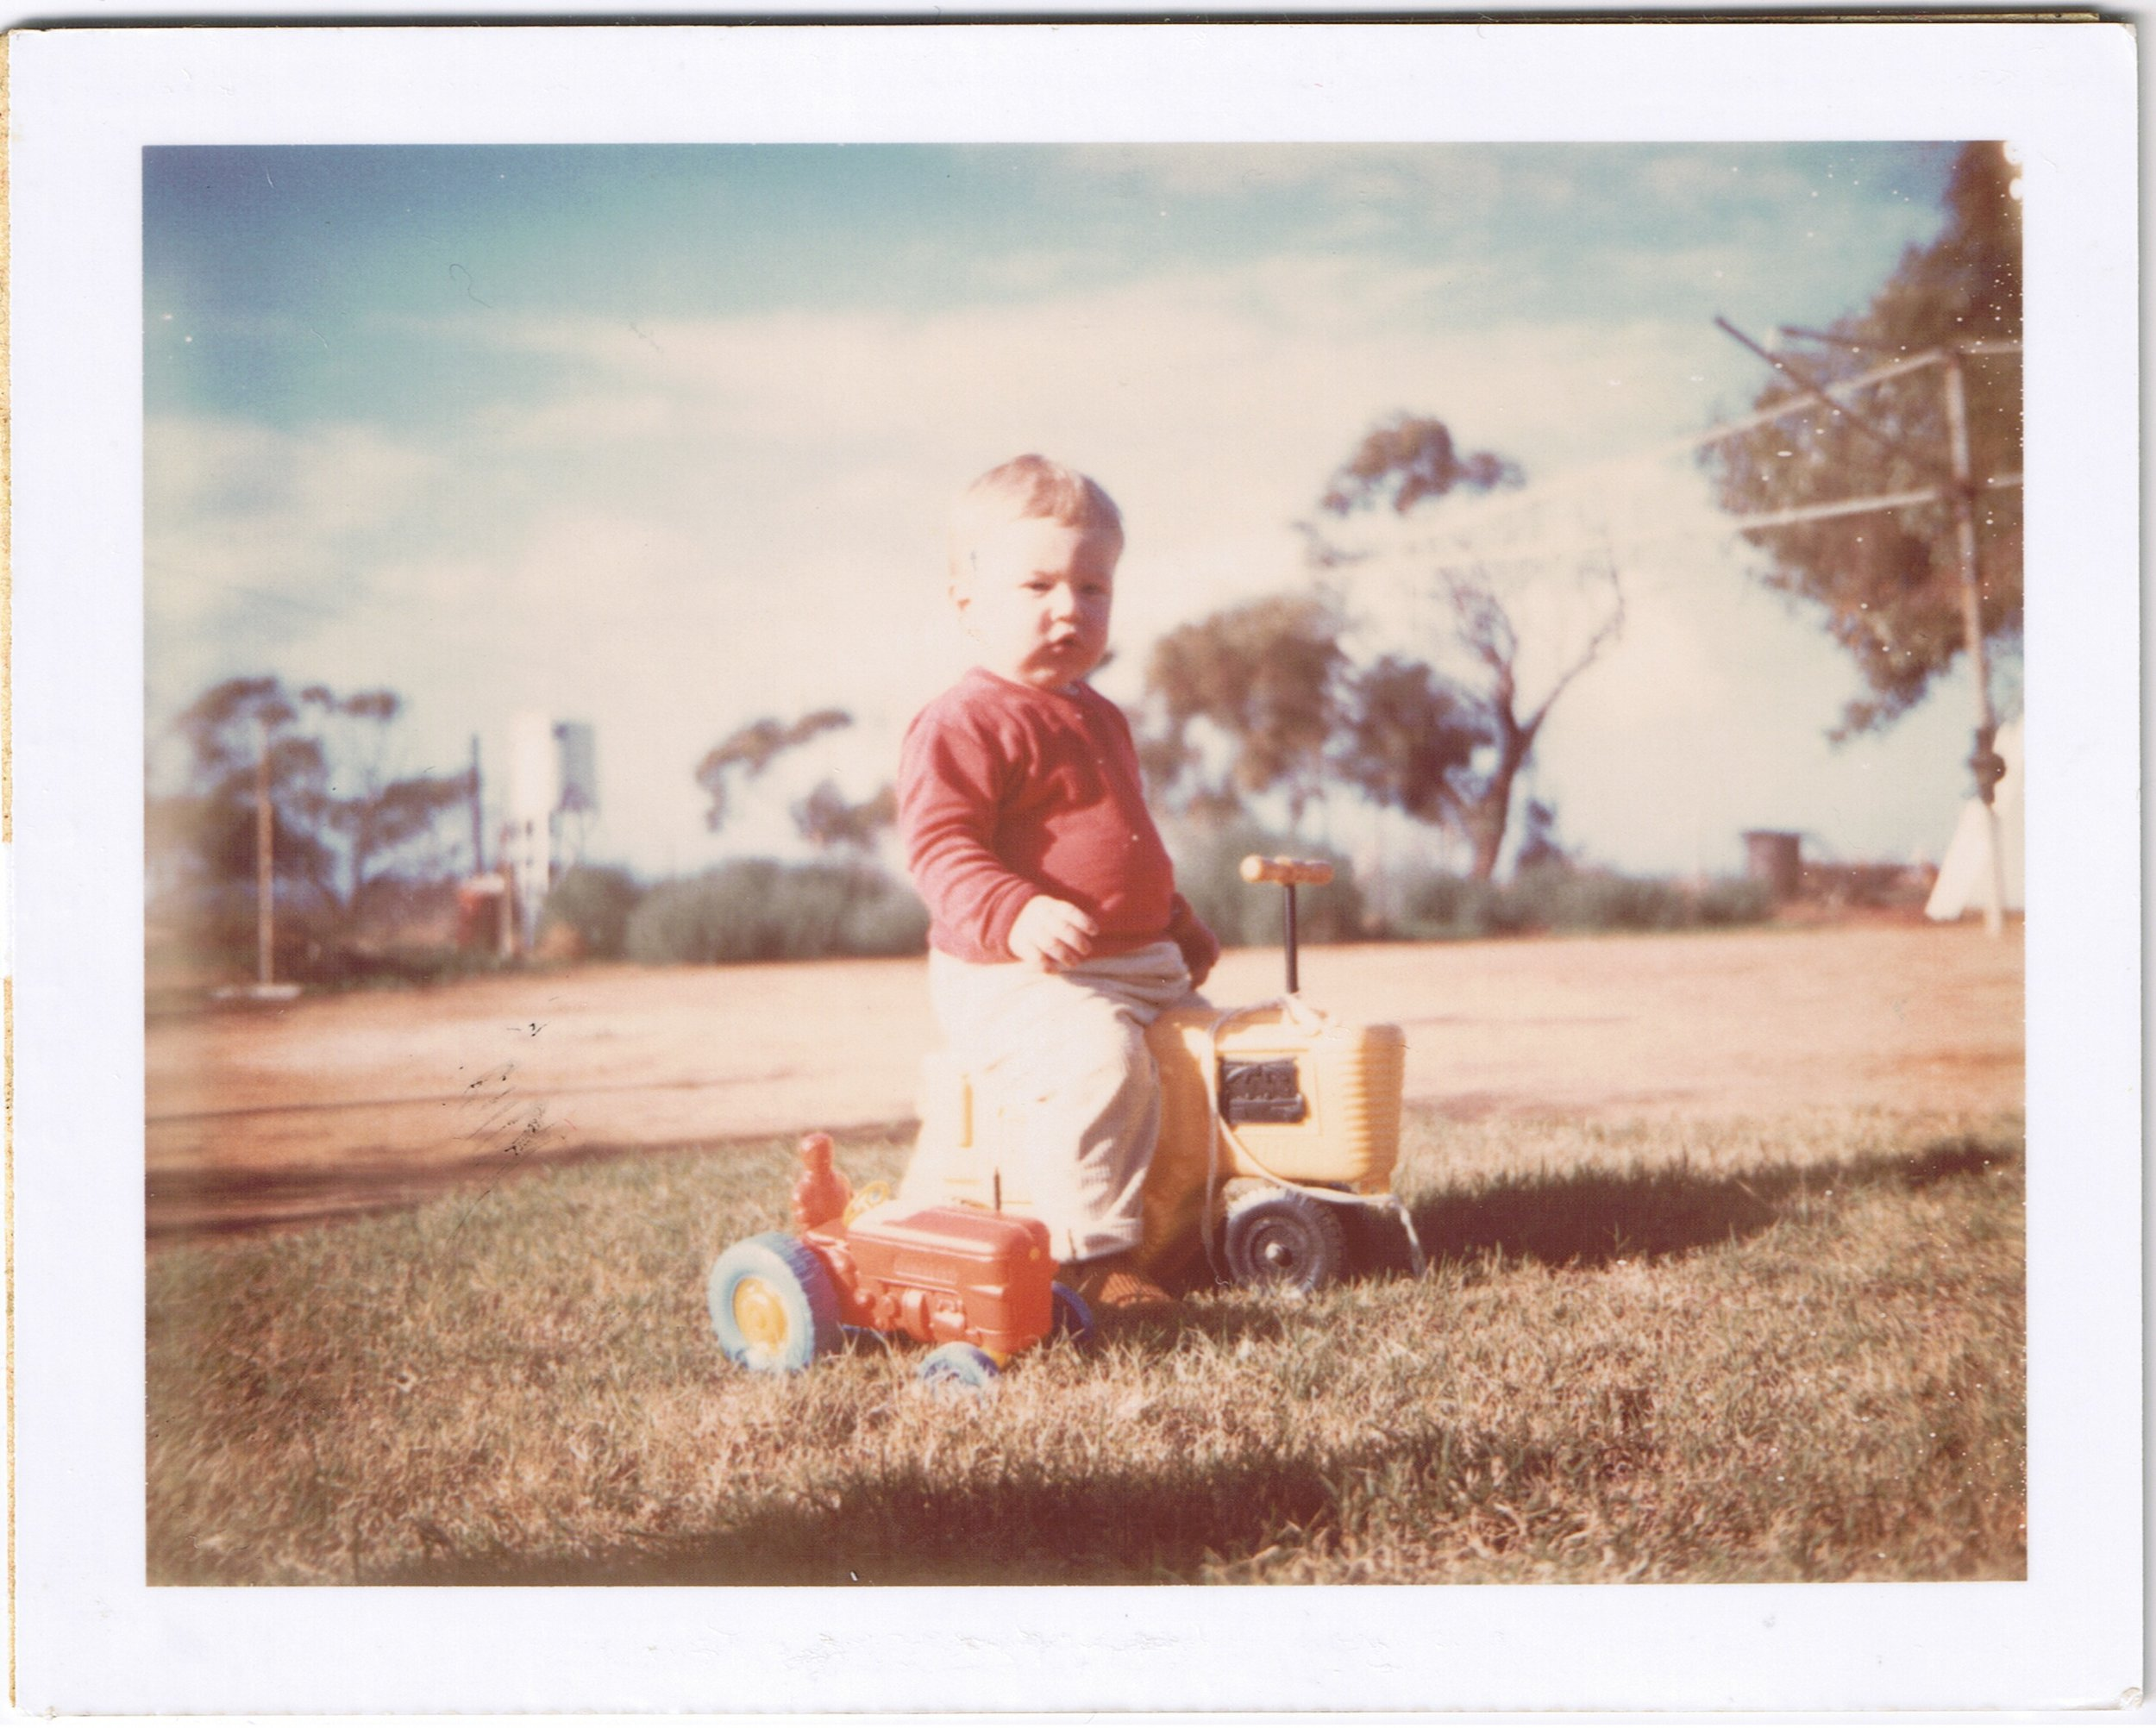 It was 1969. Two blokes had just walked on the moon. Meanwhile, Brendon was driving tractors on the farm and hoping conscription would be abolished before he turned 18.